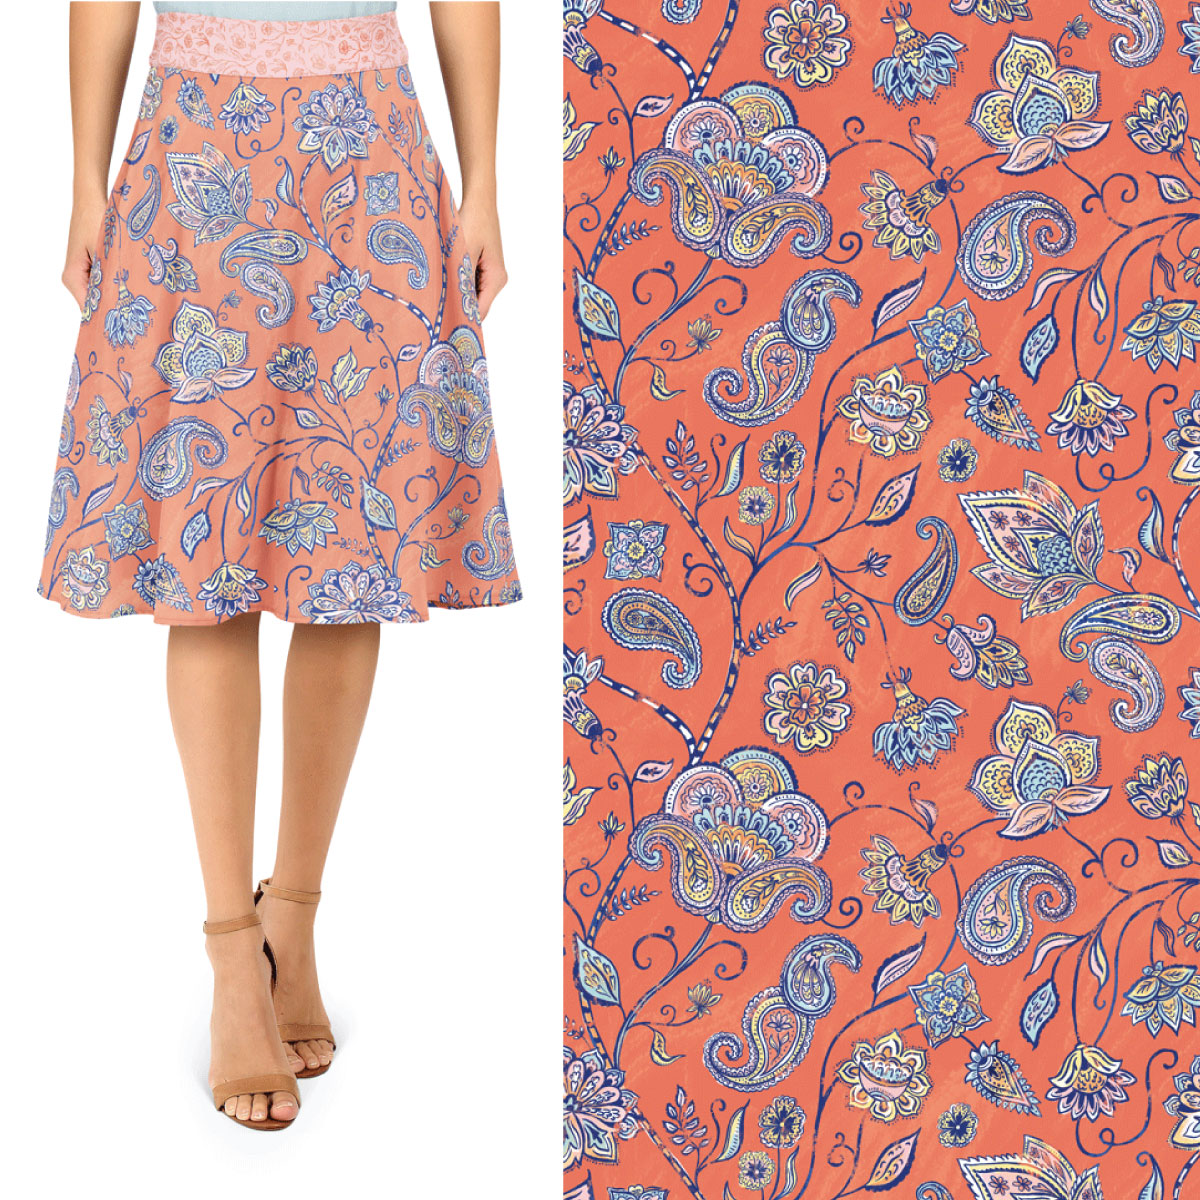 Swing-Skirt_mockup_with_pattern.jpg